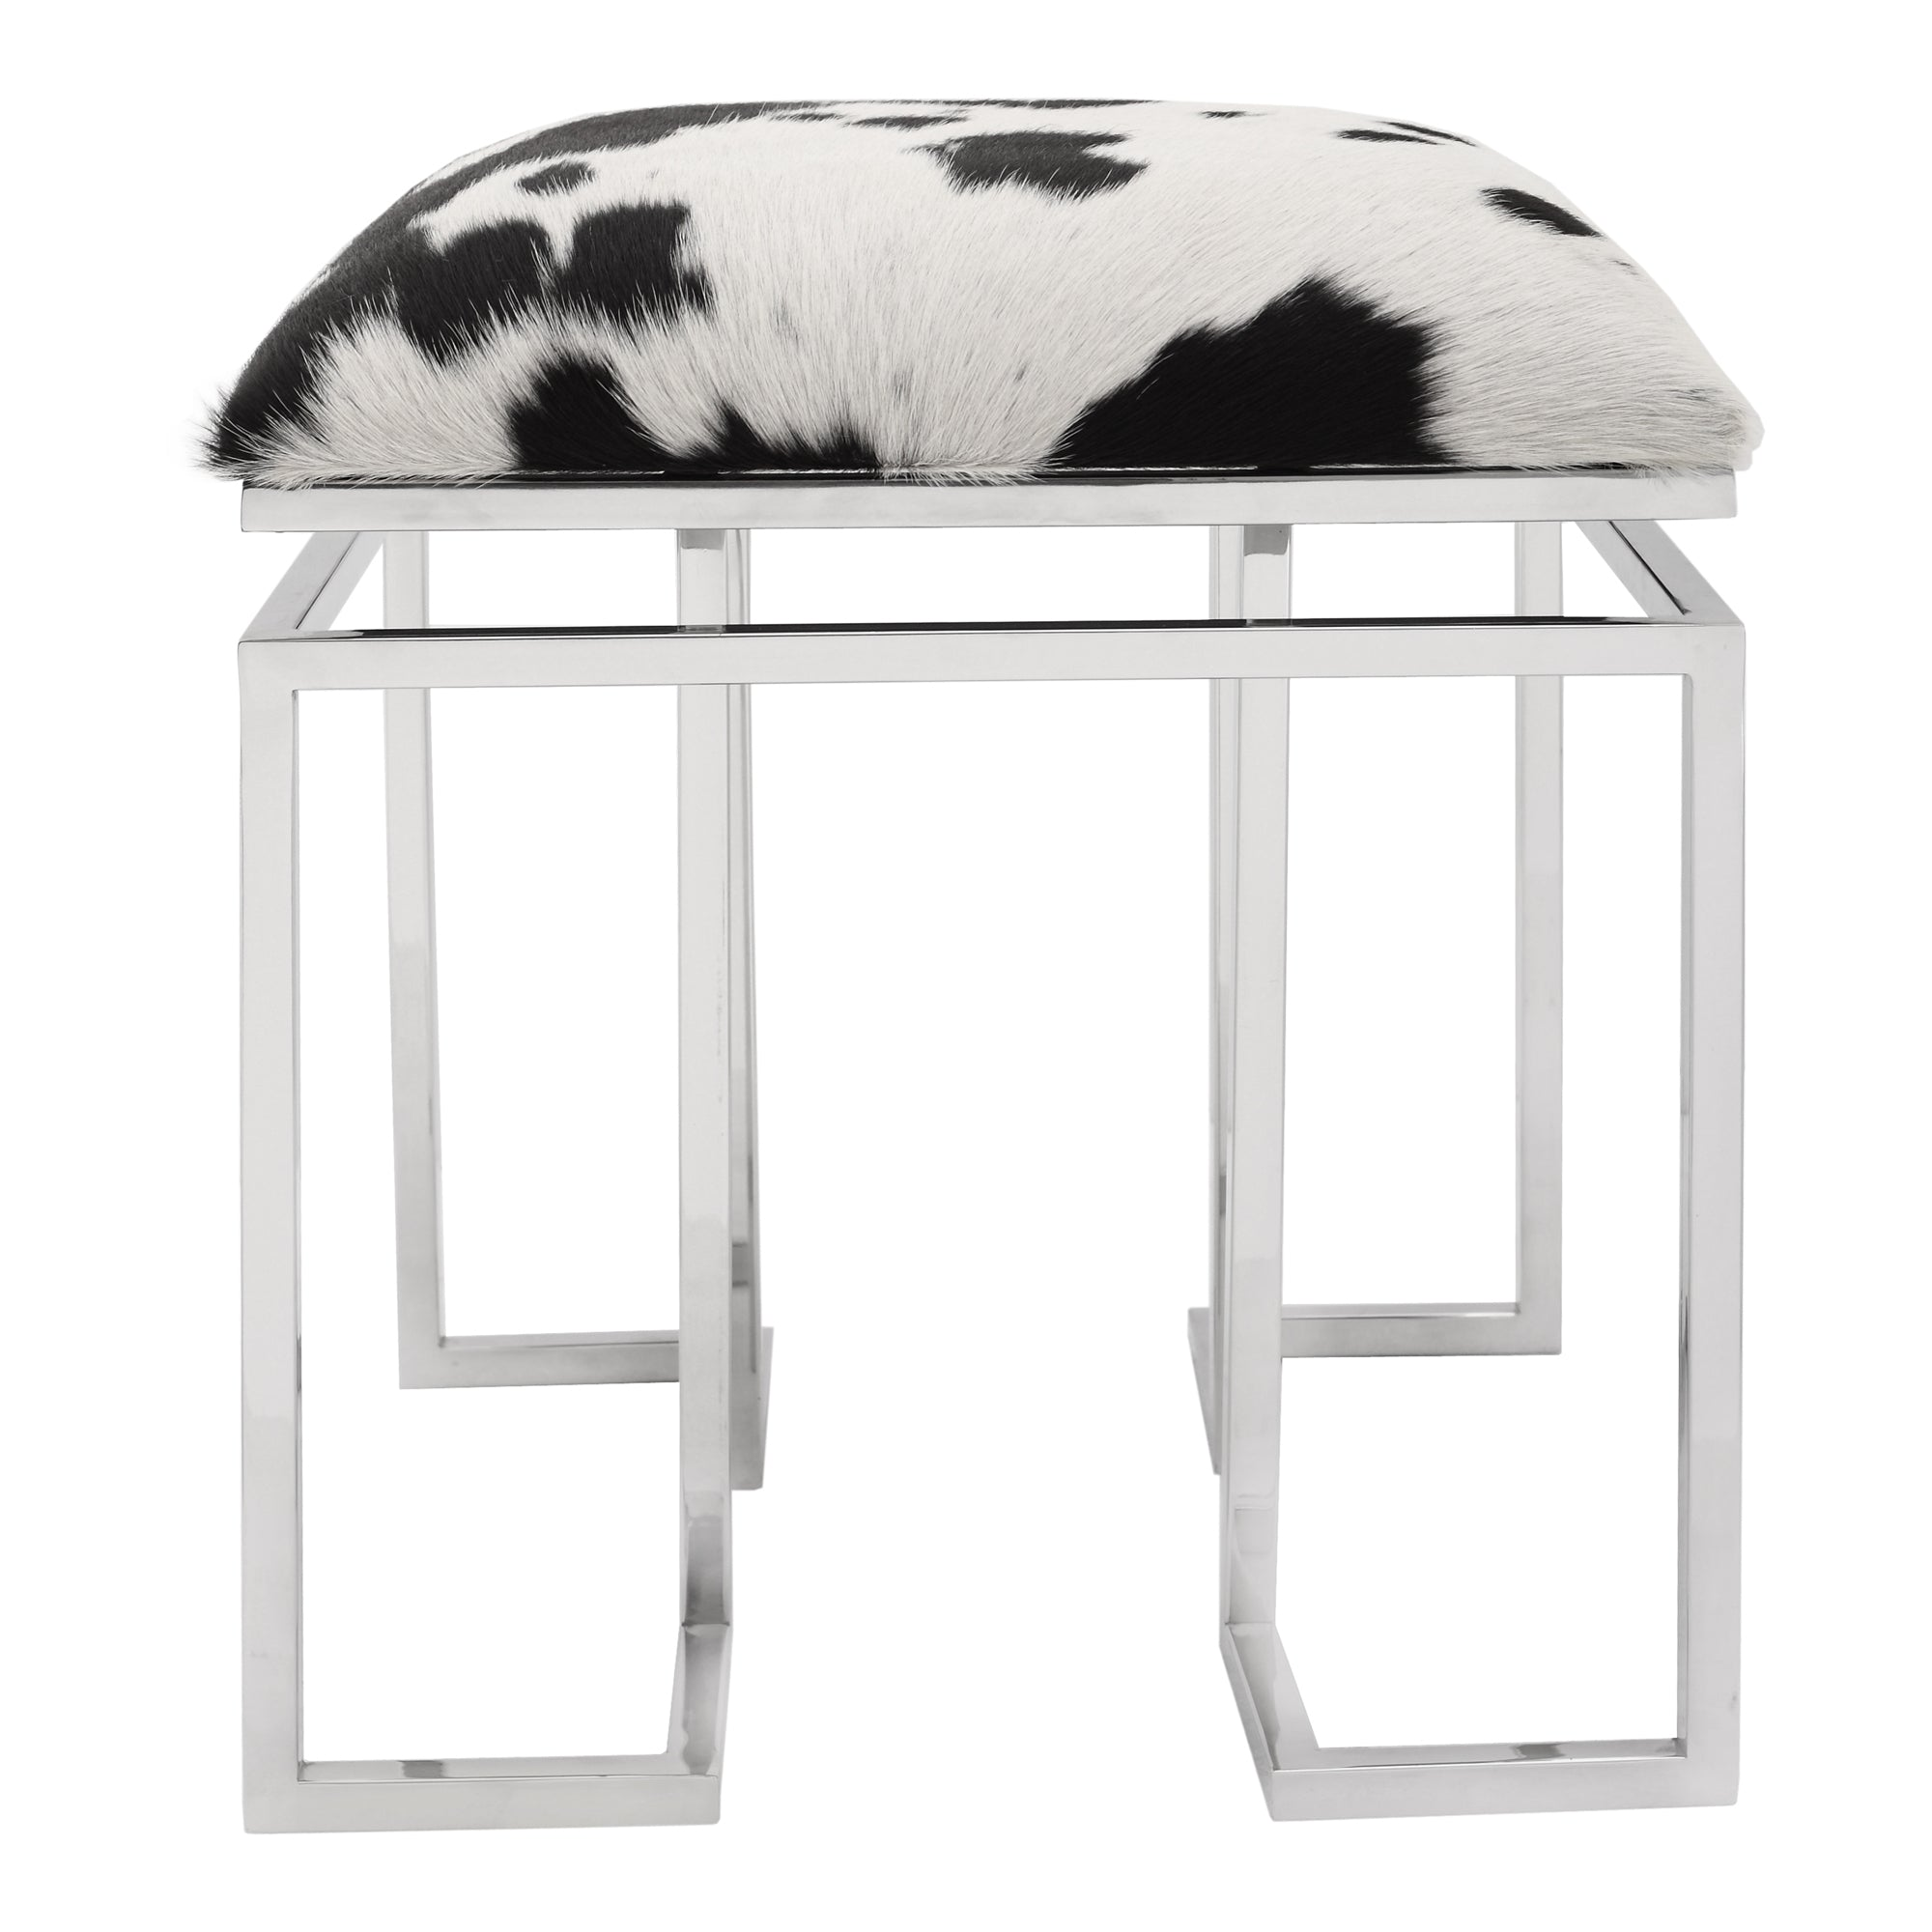 APPA STOOL SQUARE, Silver - Tops-Dress